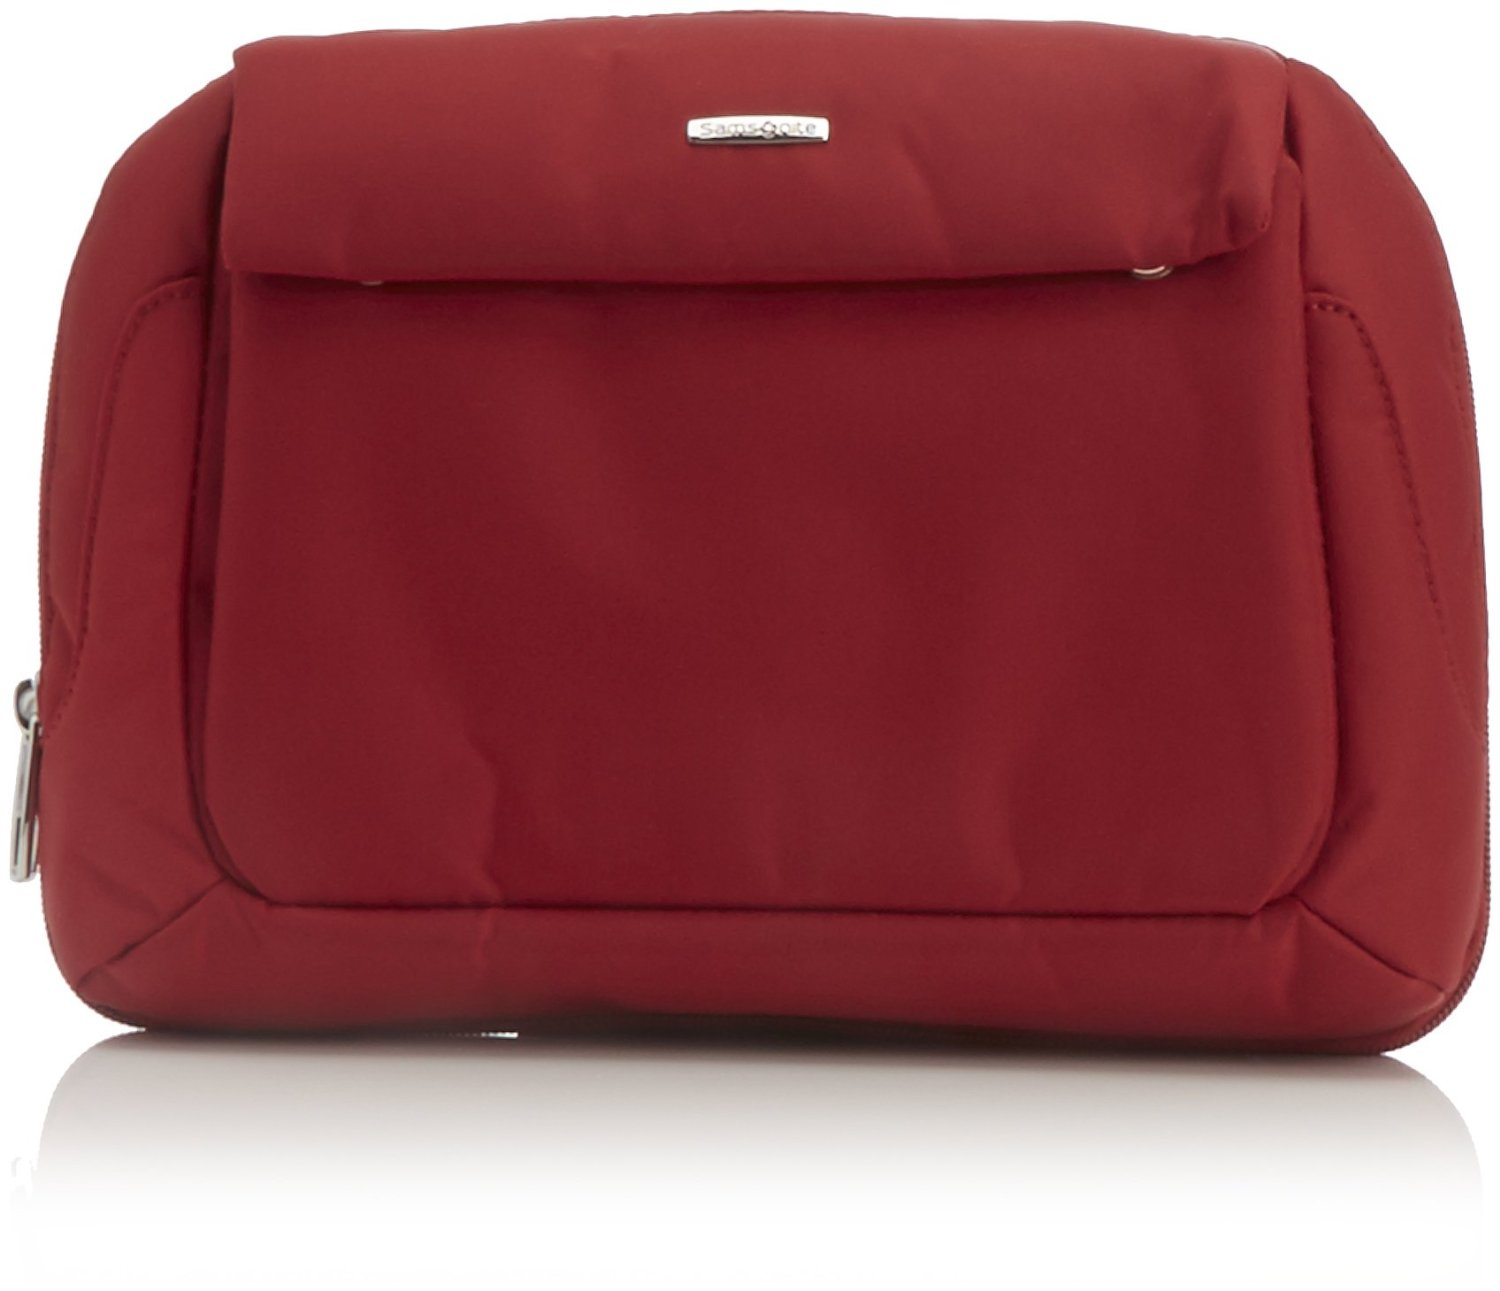 Samsonite Cosmetic cases 27V003 chili red